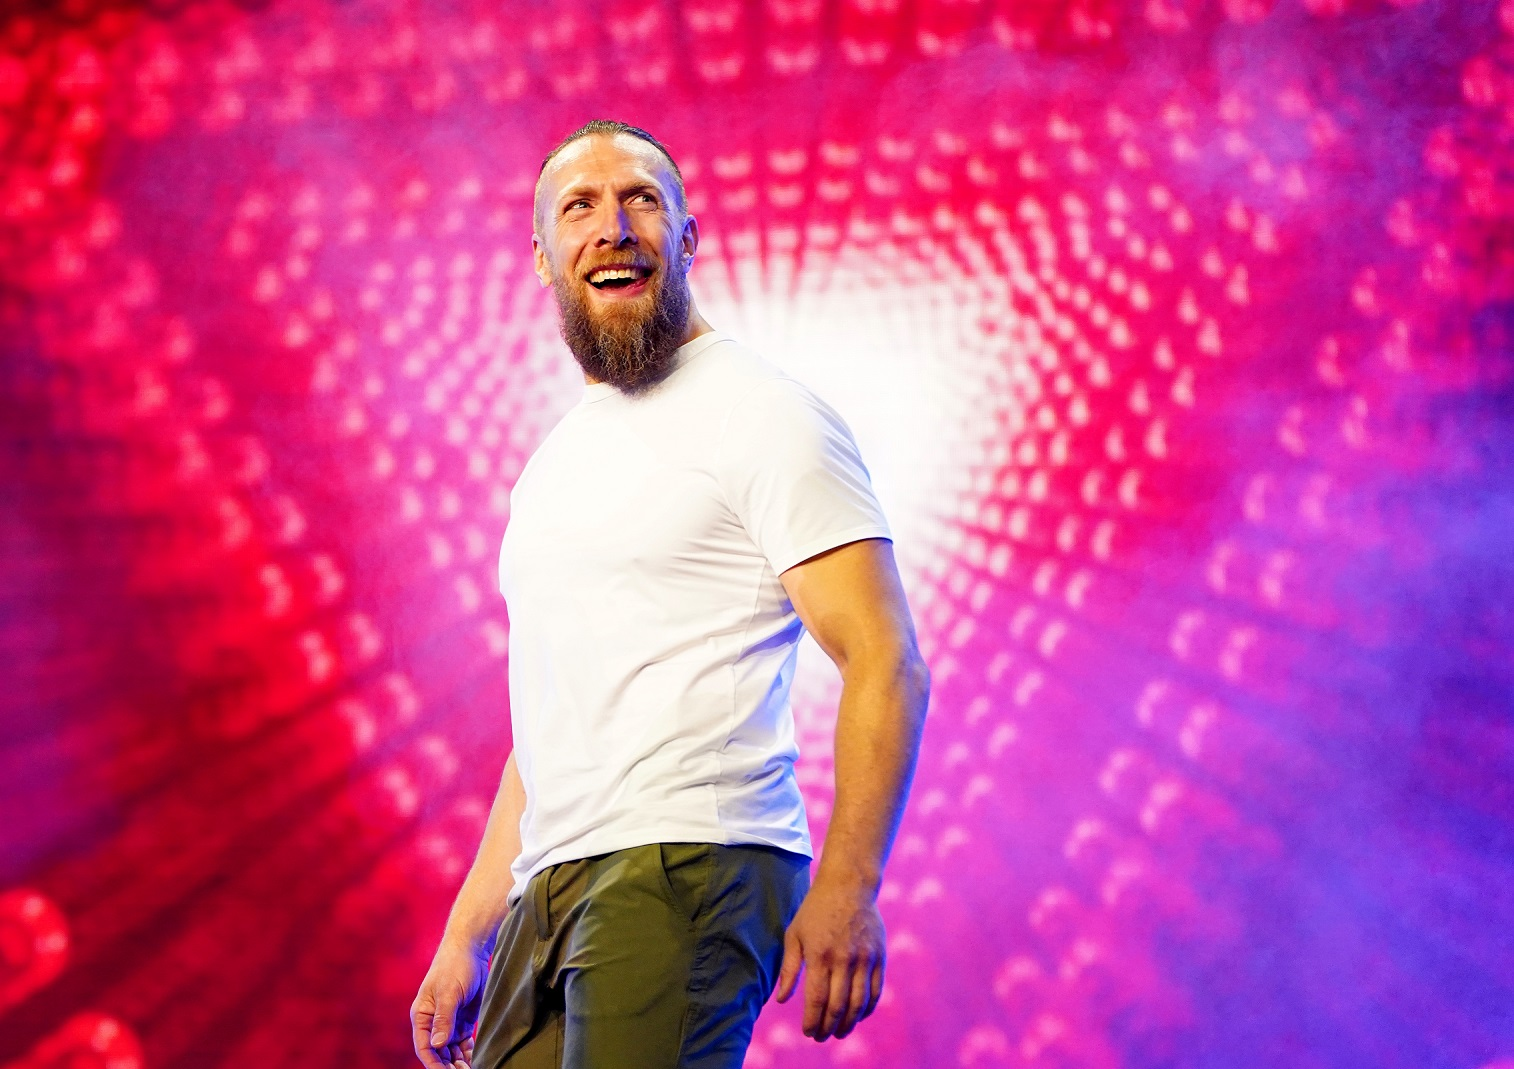 Backstage News On Bryan Danielson Signing With AEW Over WWE - Wrestling Inc.